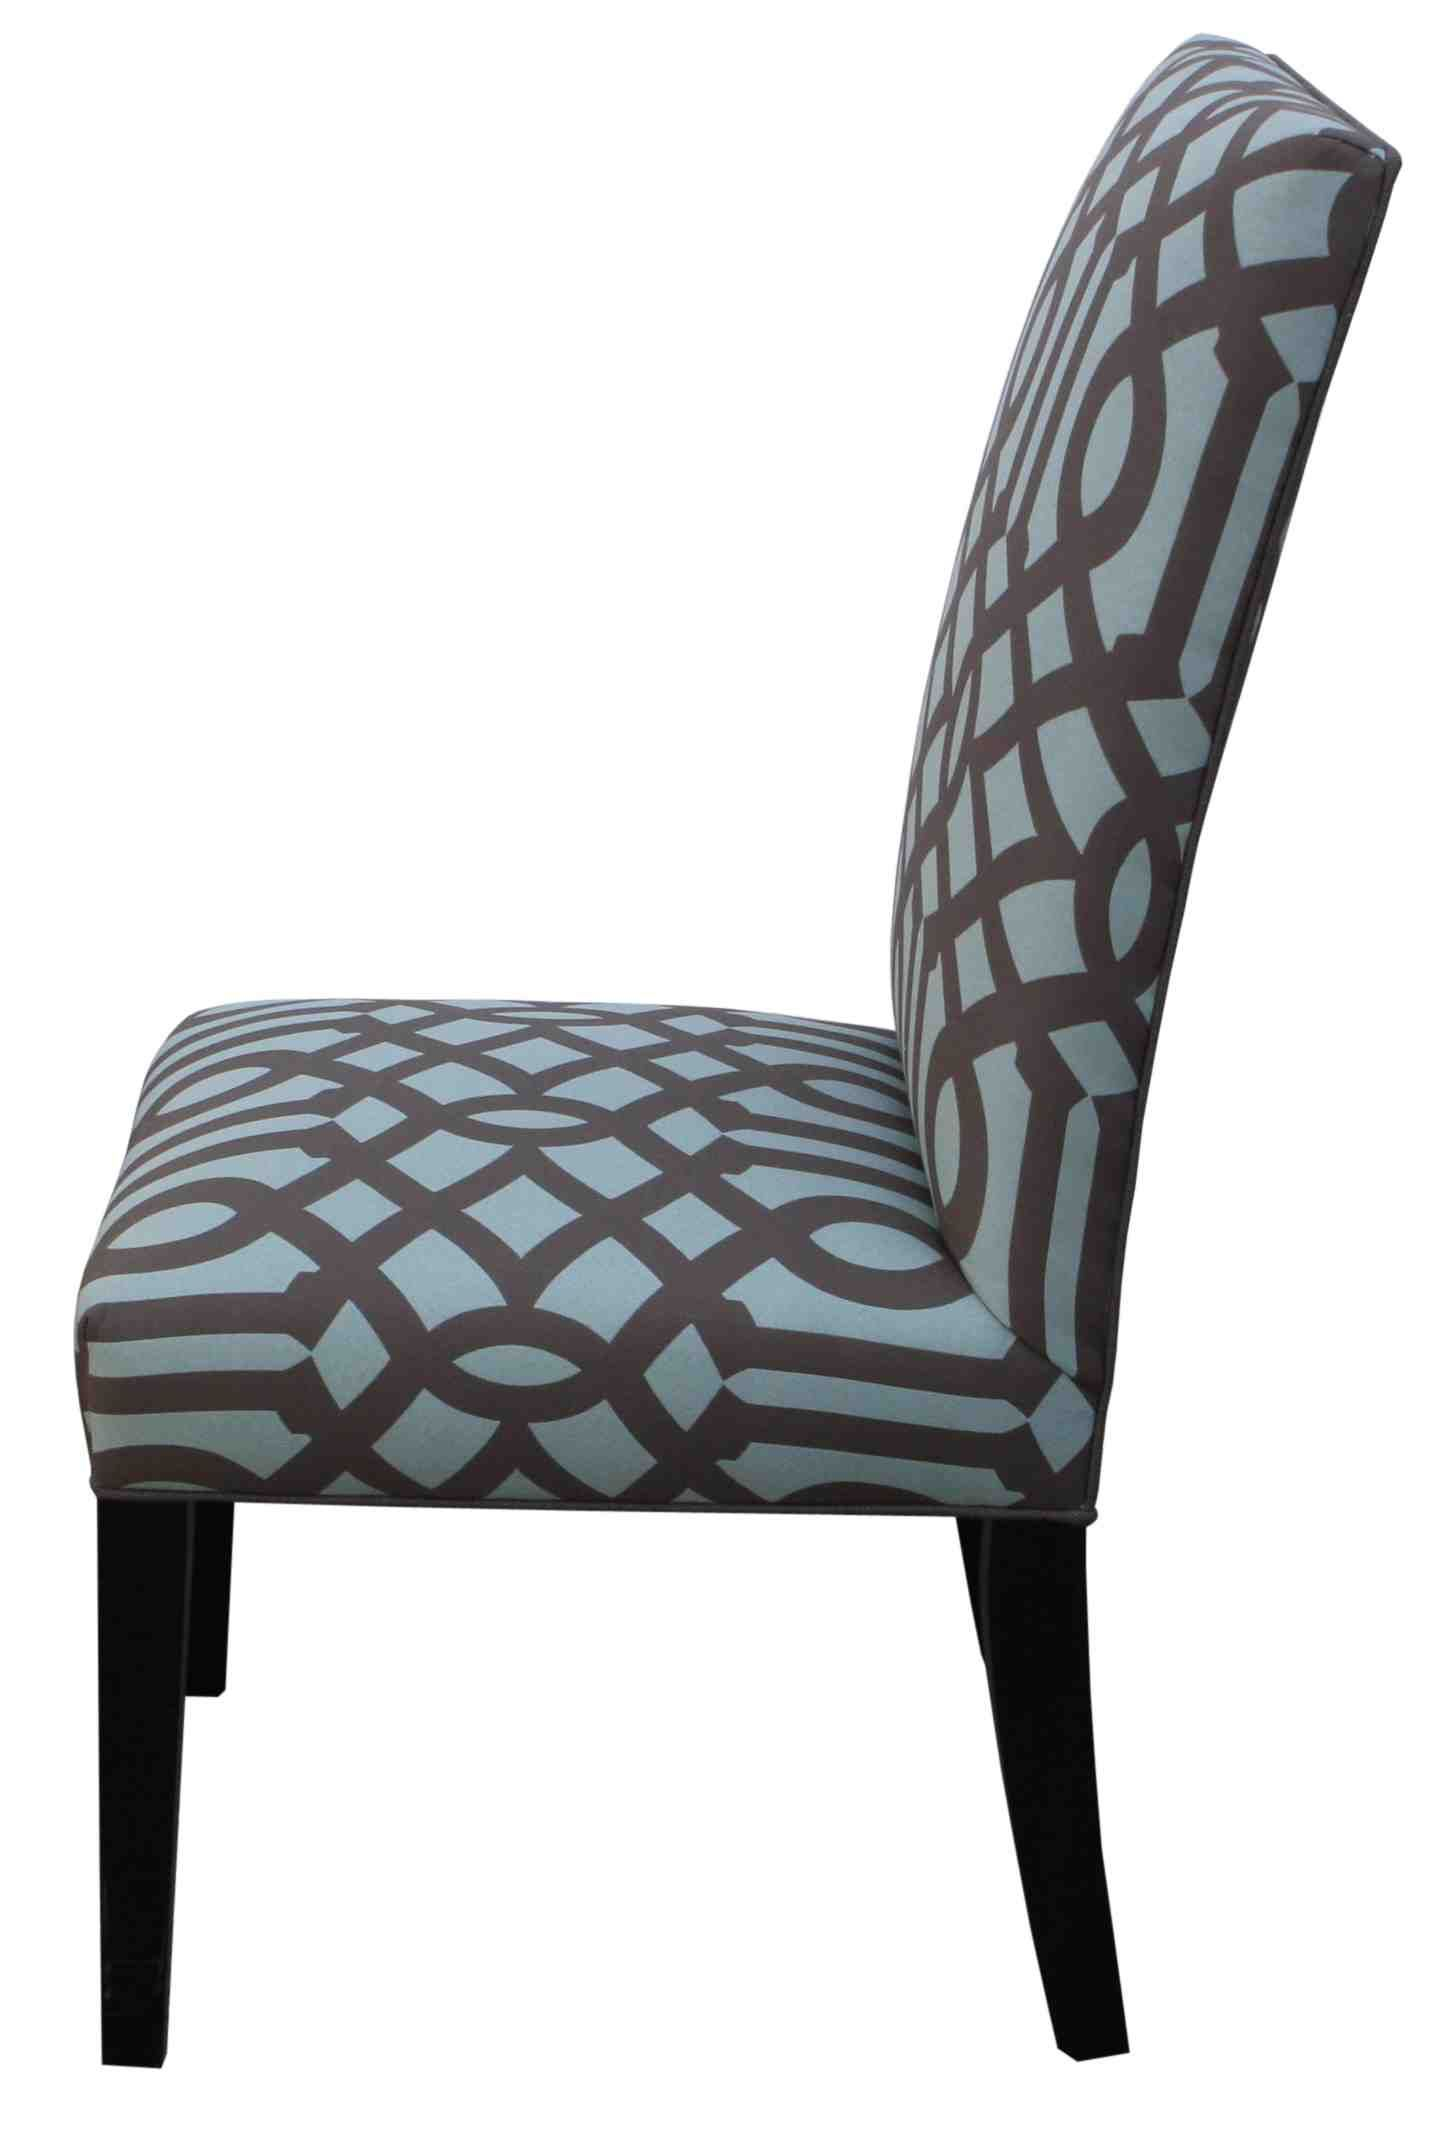 Custom Dining Chairs Contemporary Upholstered Chairp